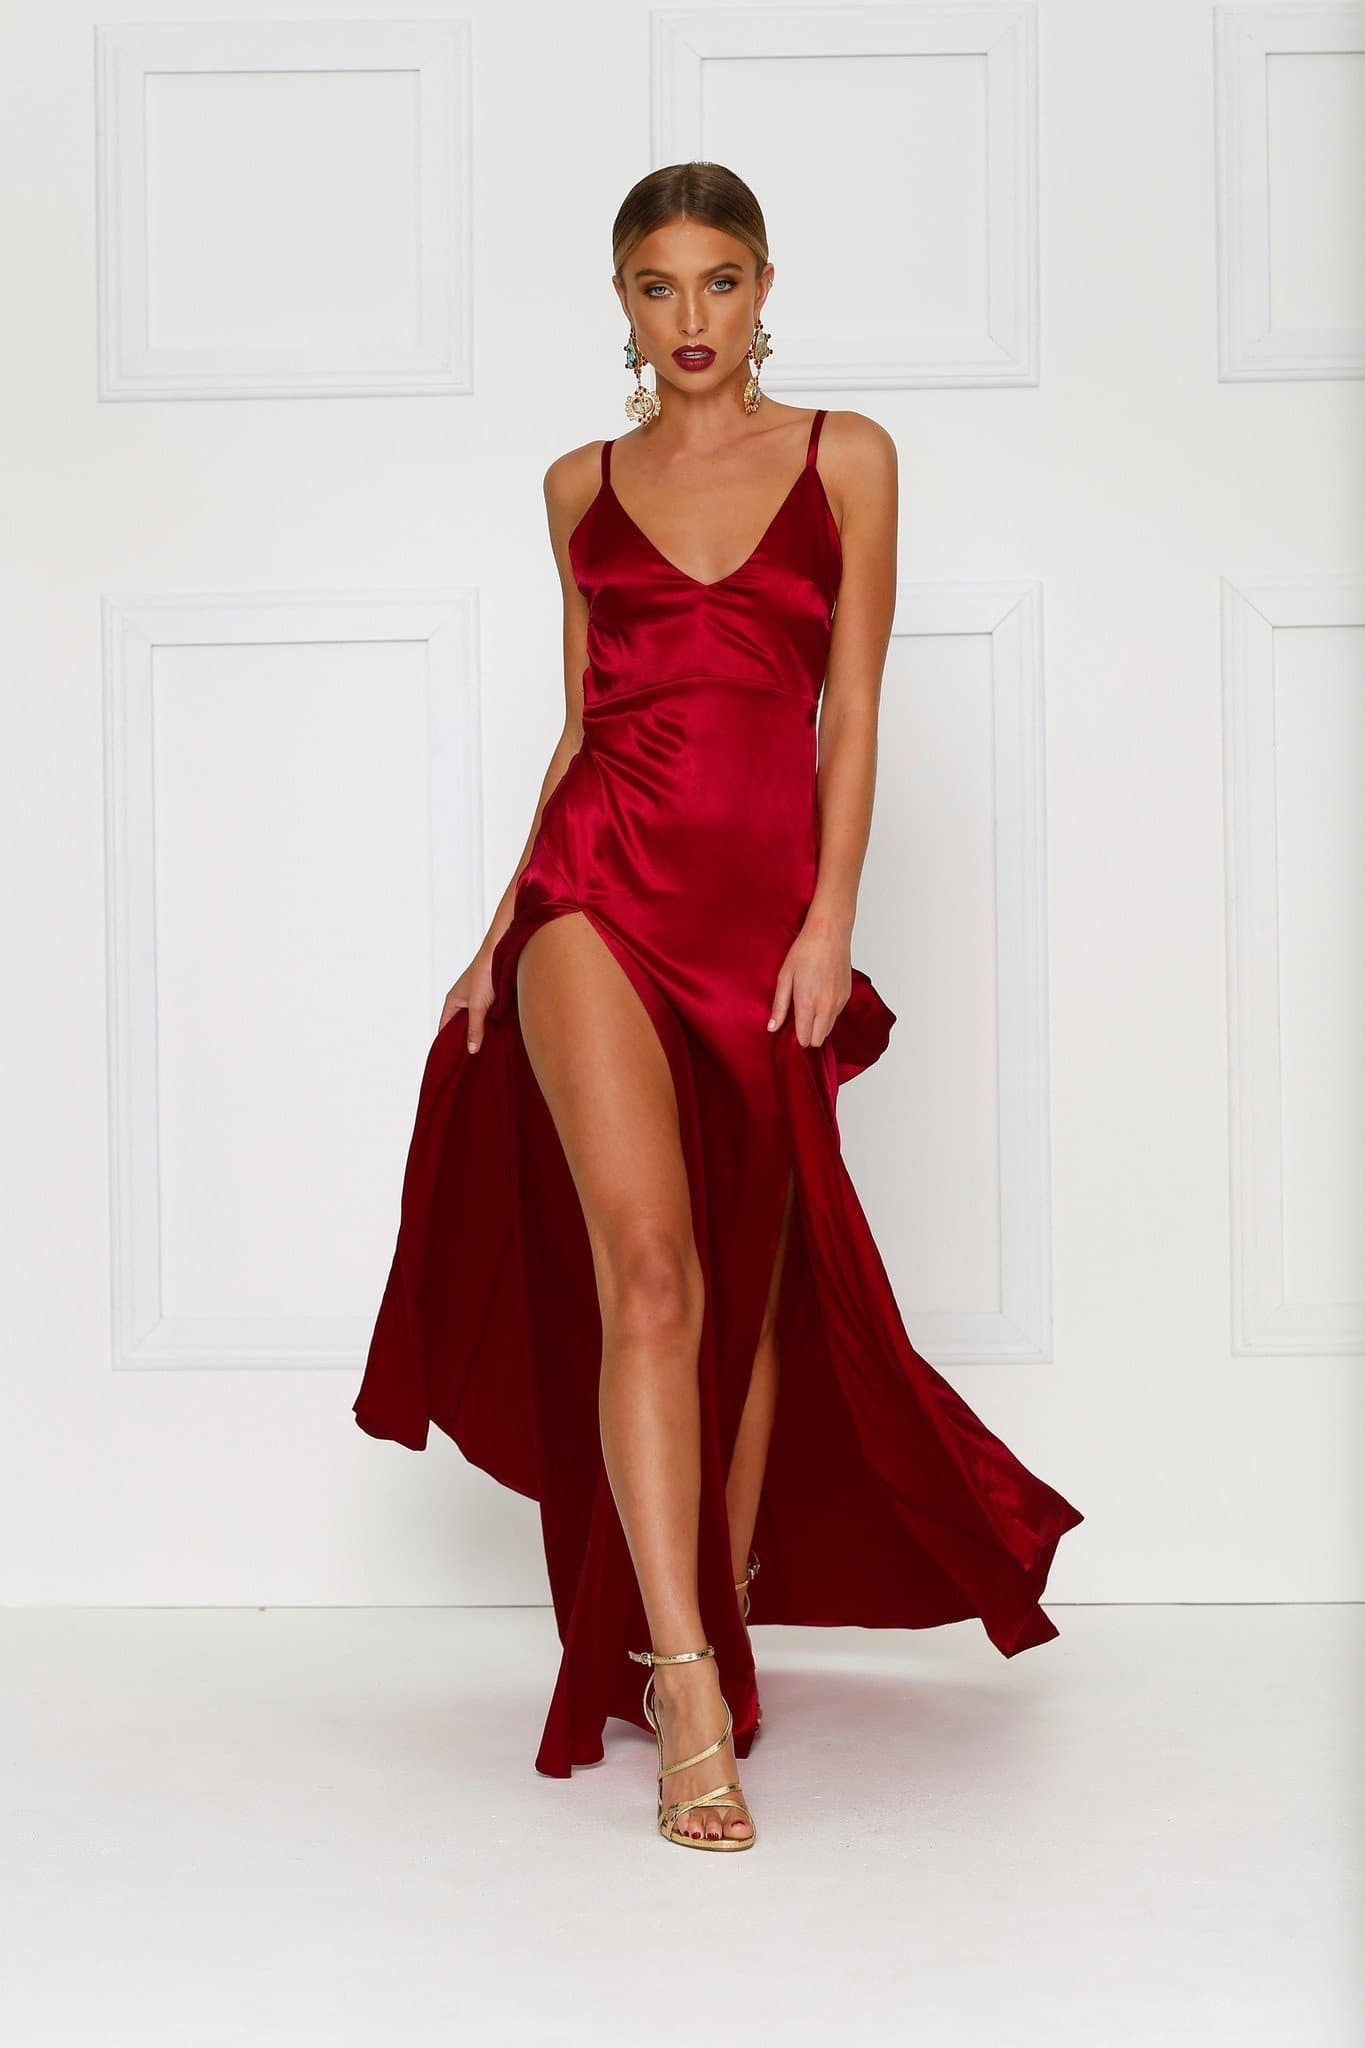 Alexis - Wine Red V Neck Dress in Satin with High Splits